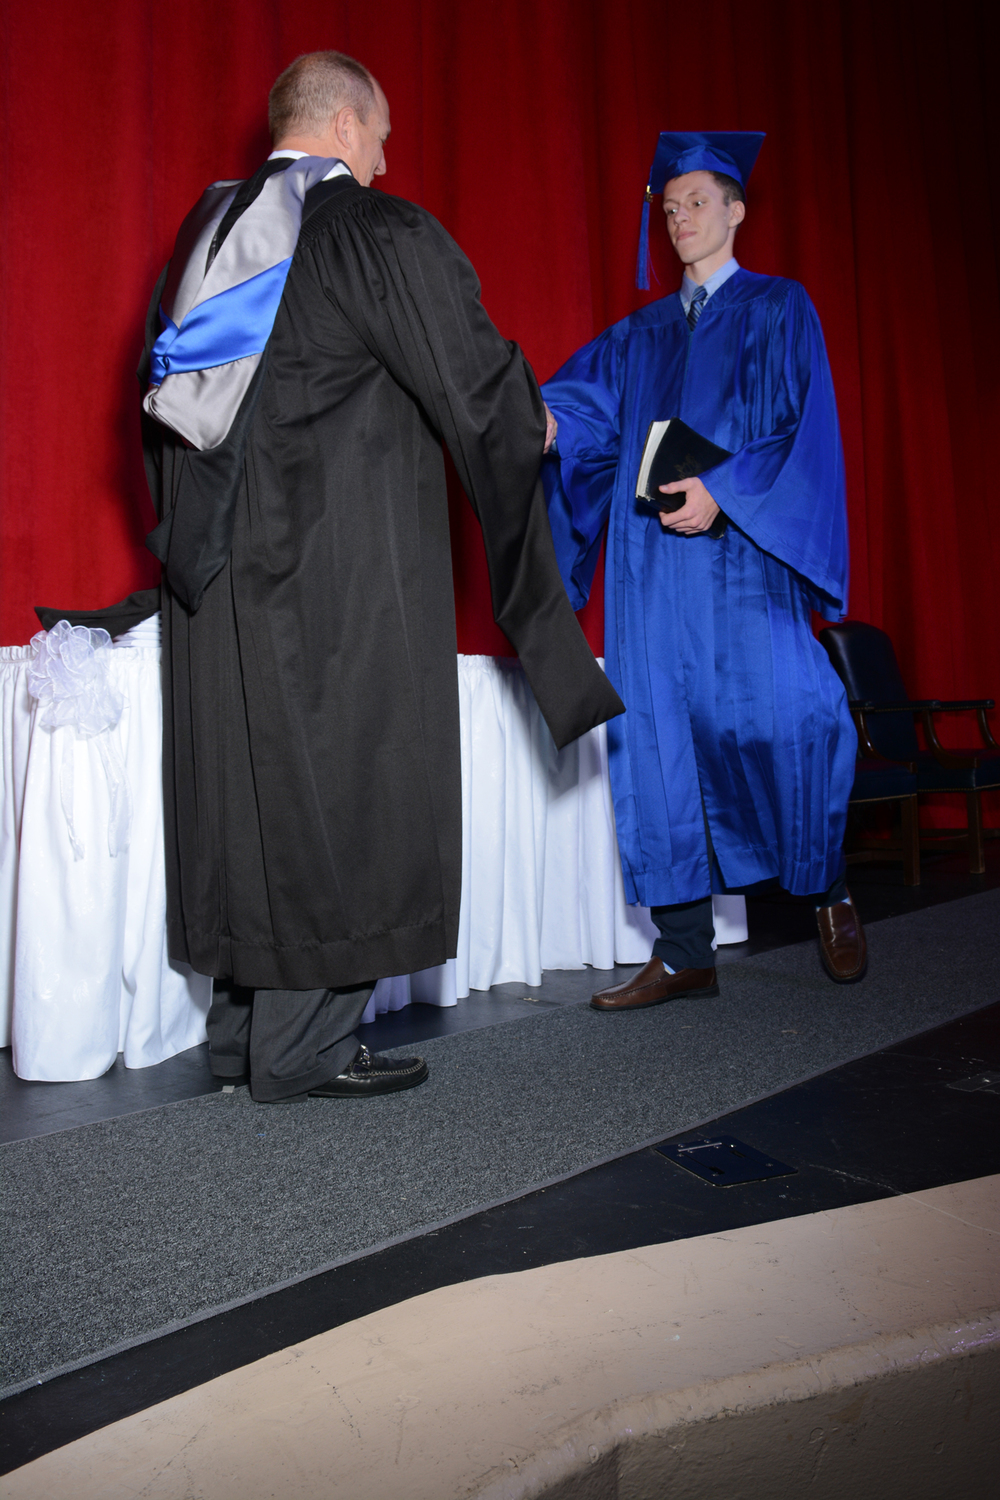 May16 GraduationPhotos177.jpg